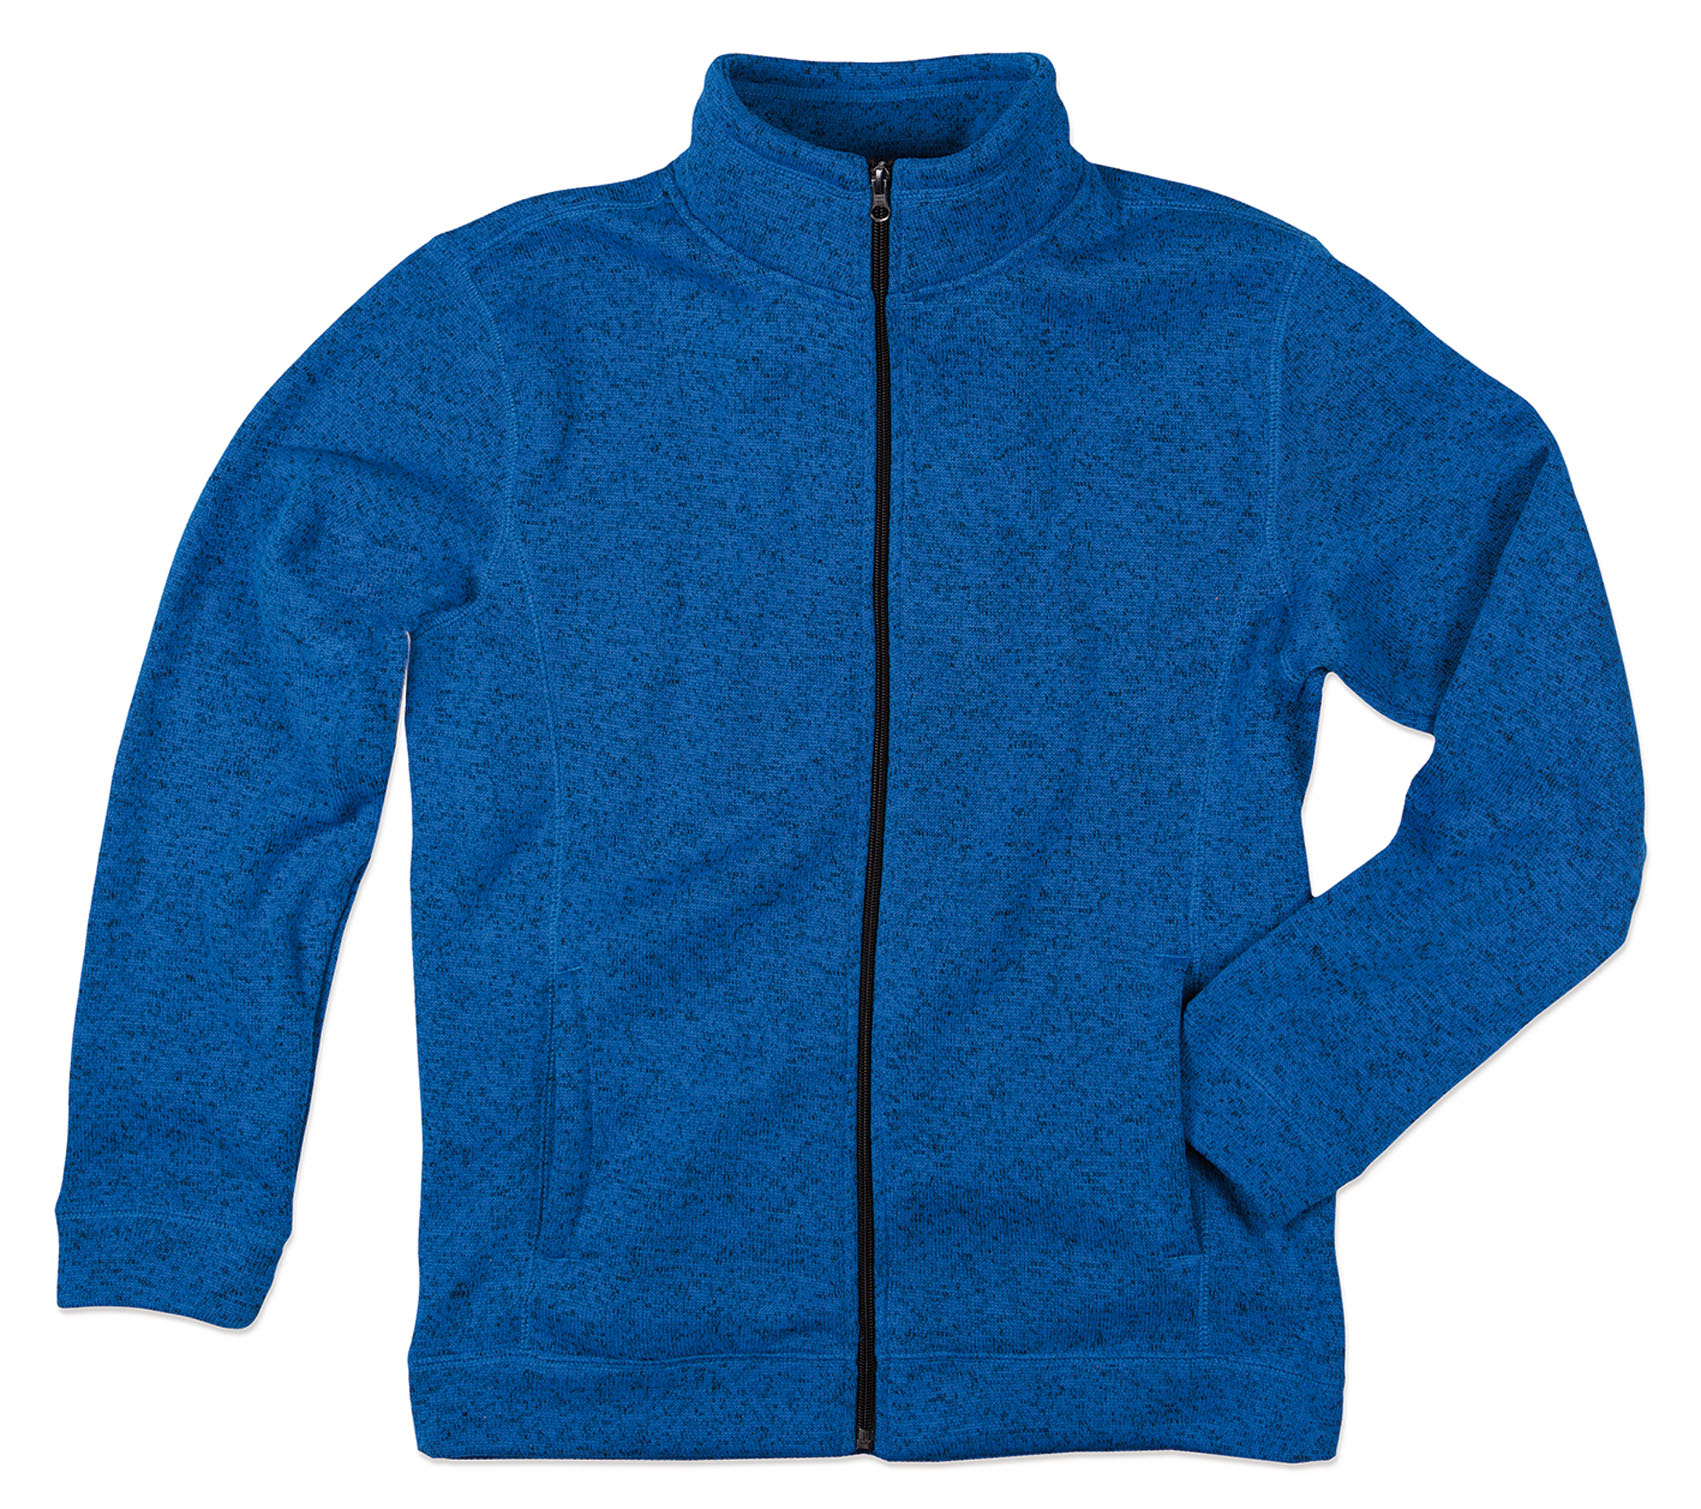 Stedman Knit Fleece Cardigan Active for him